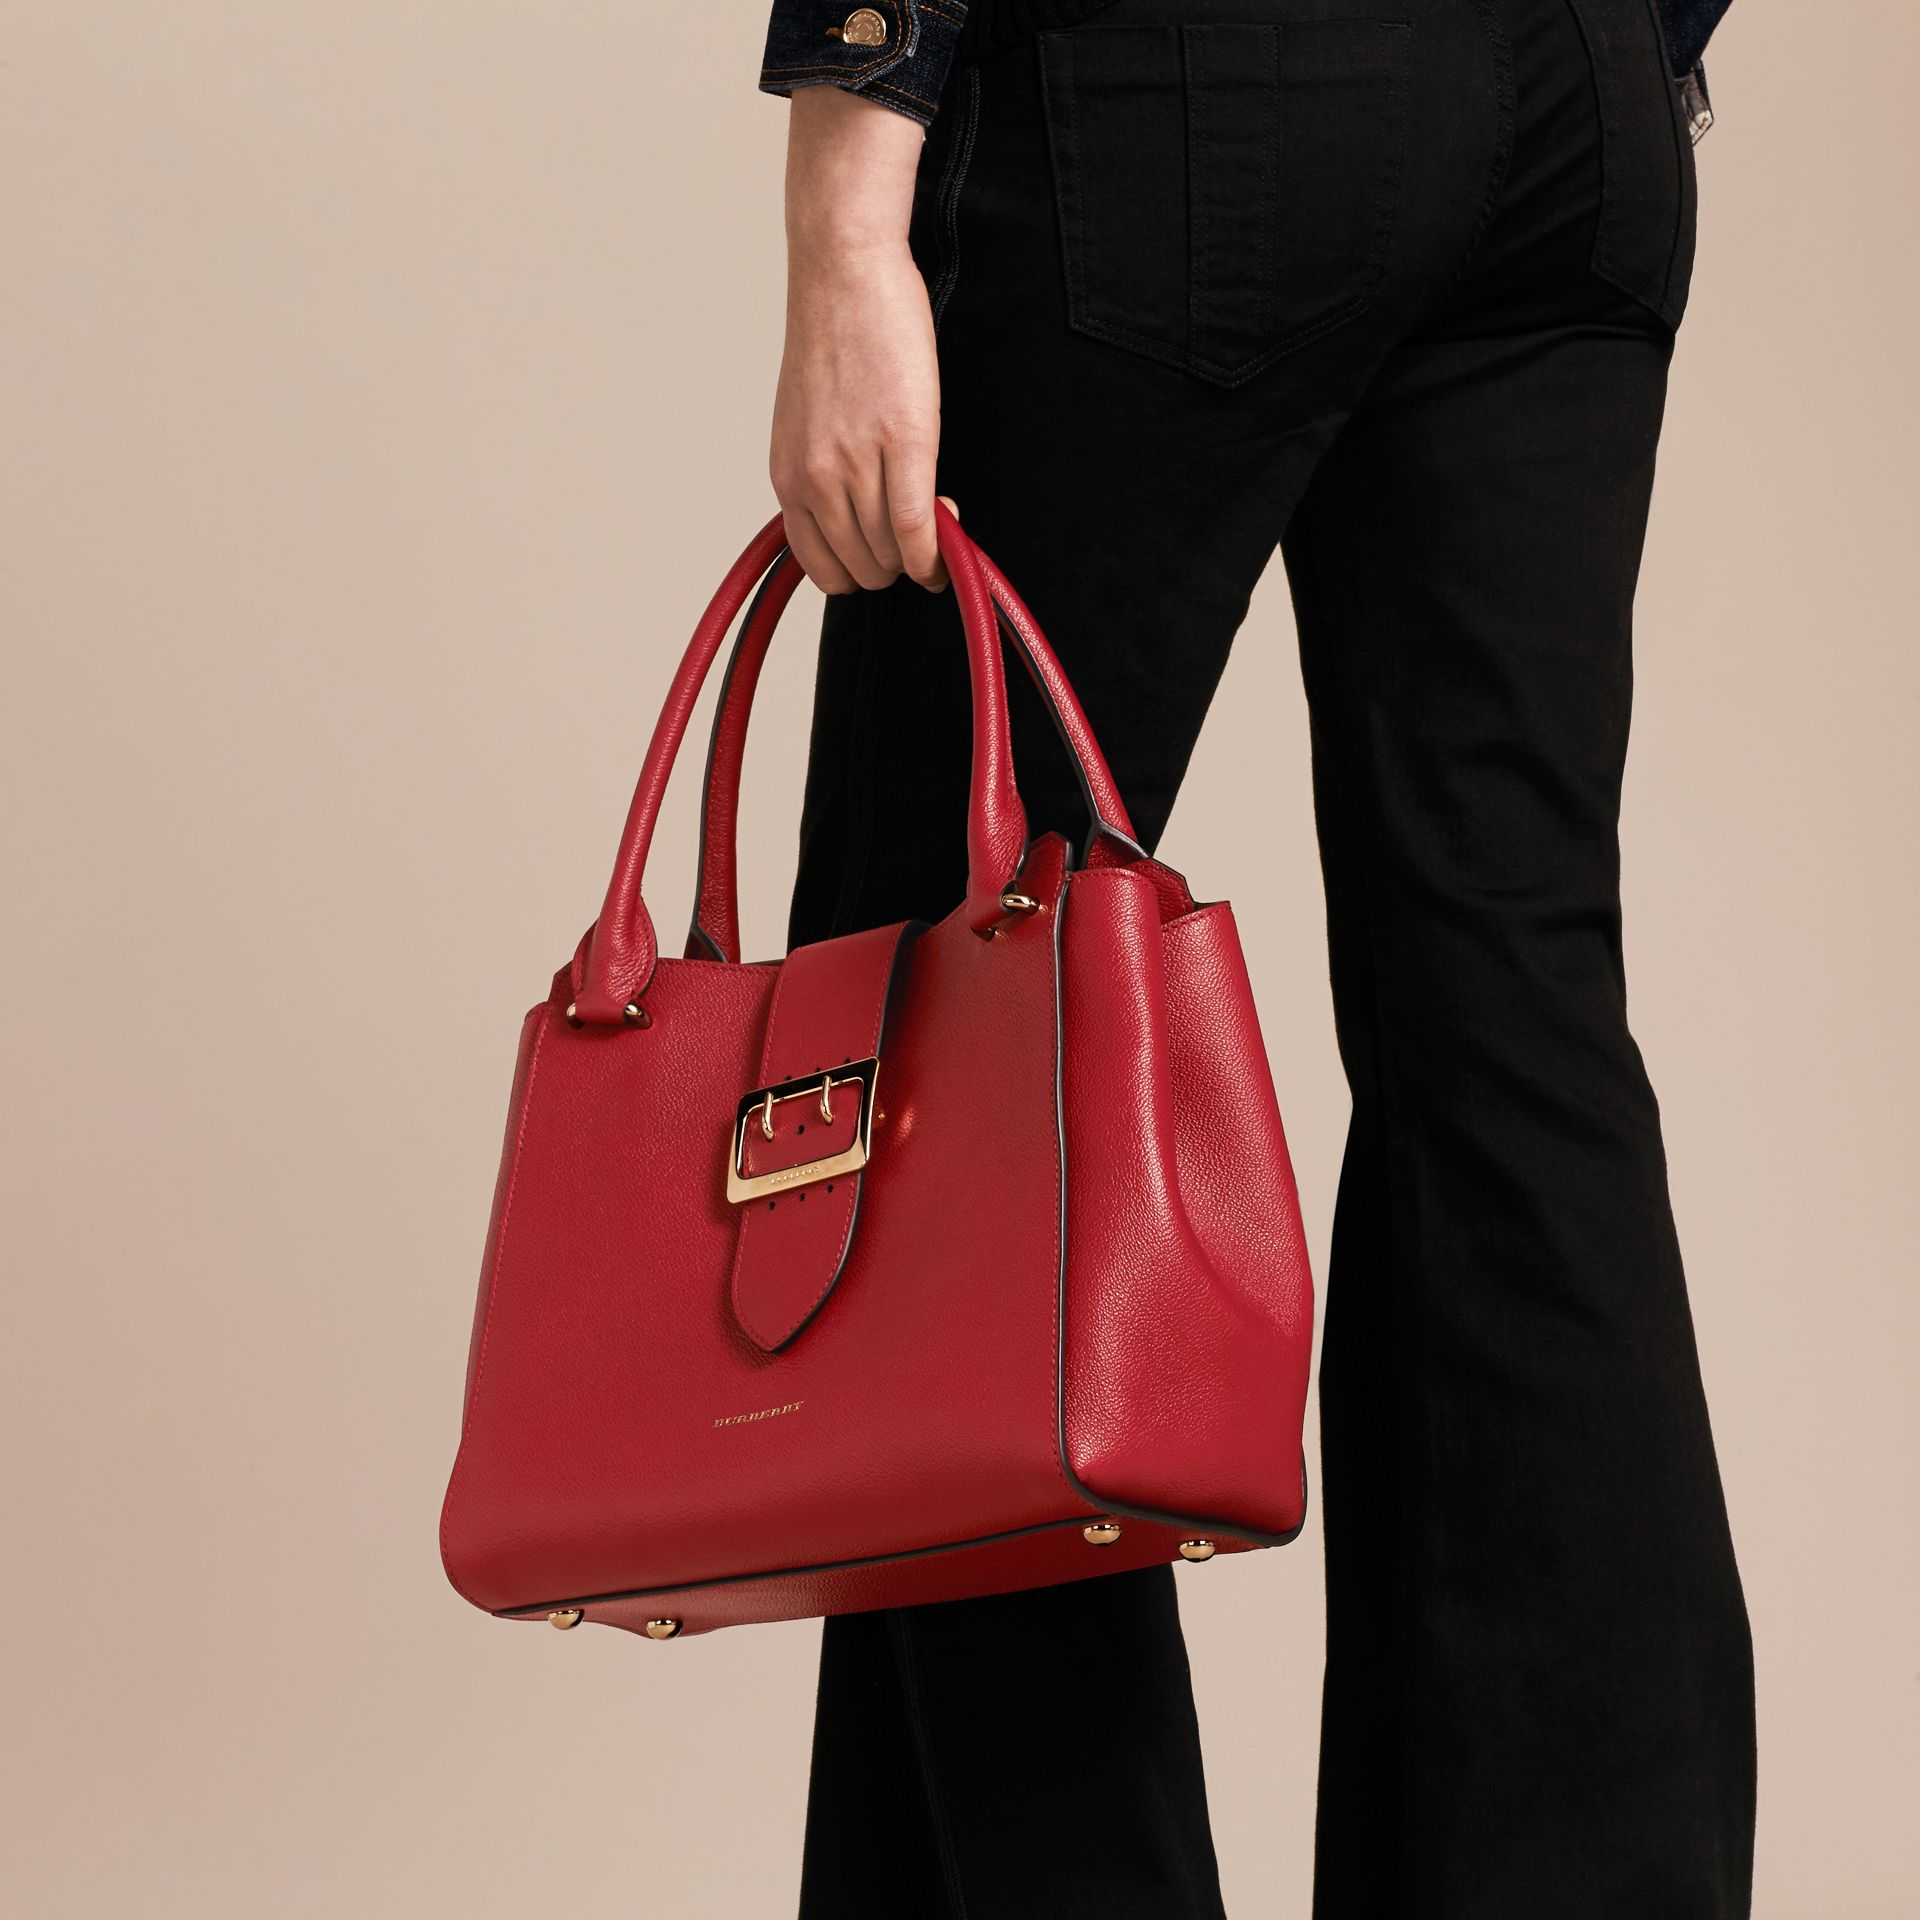 Sac tote The Buckle medium en cuir grainé (Rouge Parade) - photo de la galerie 4